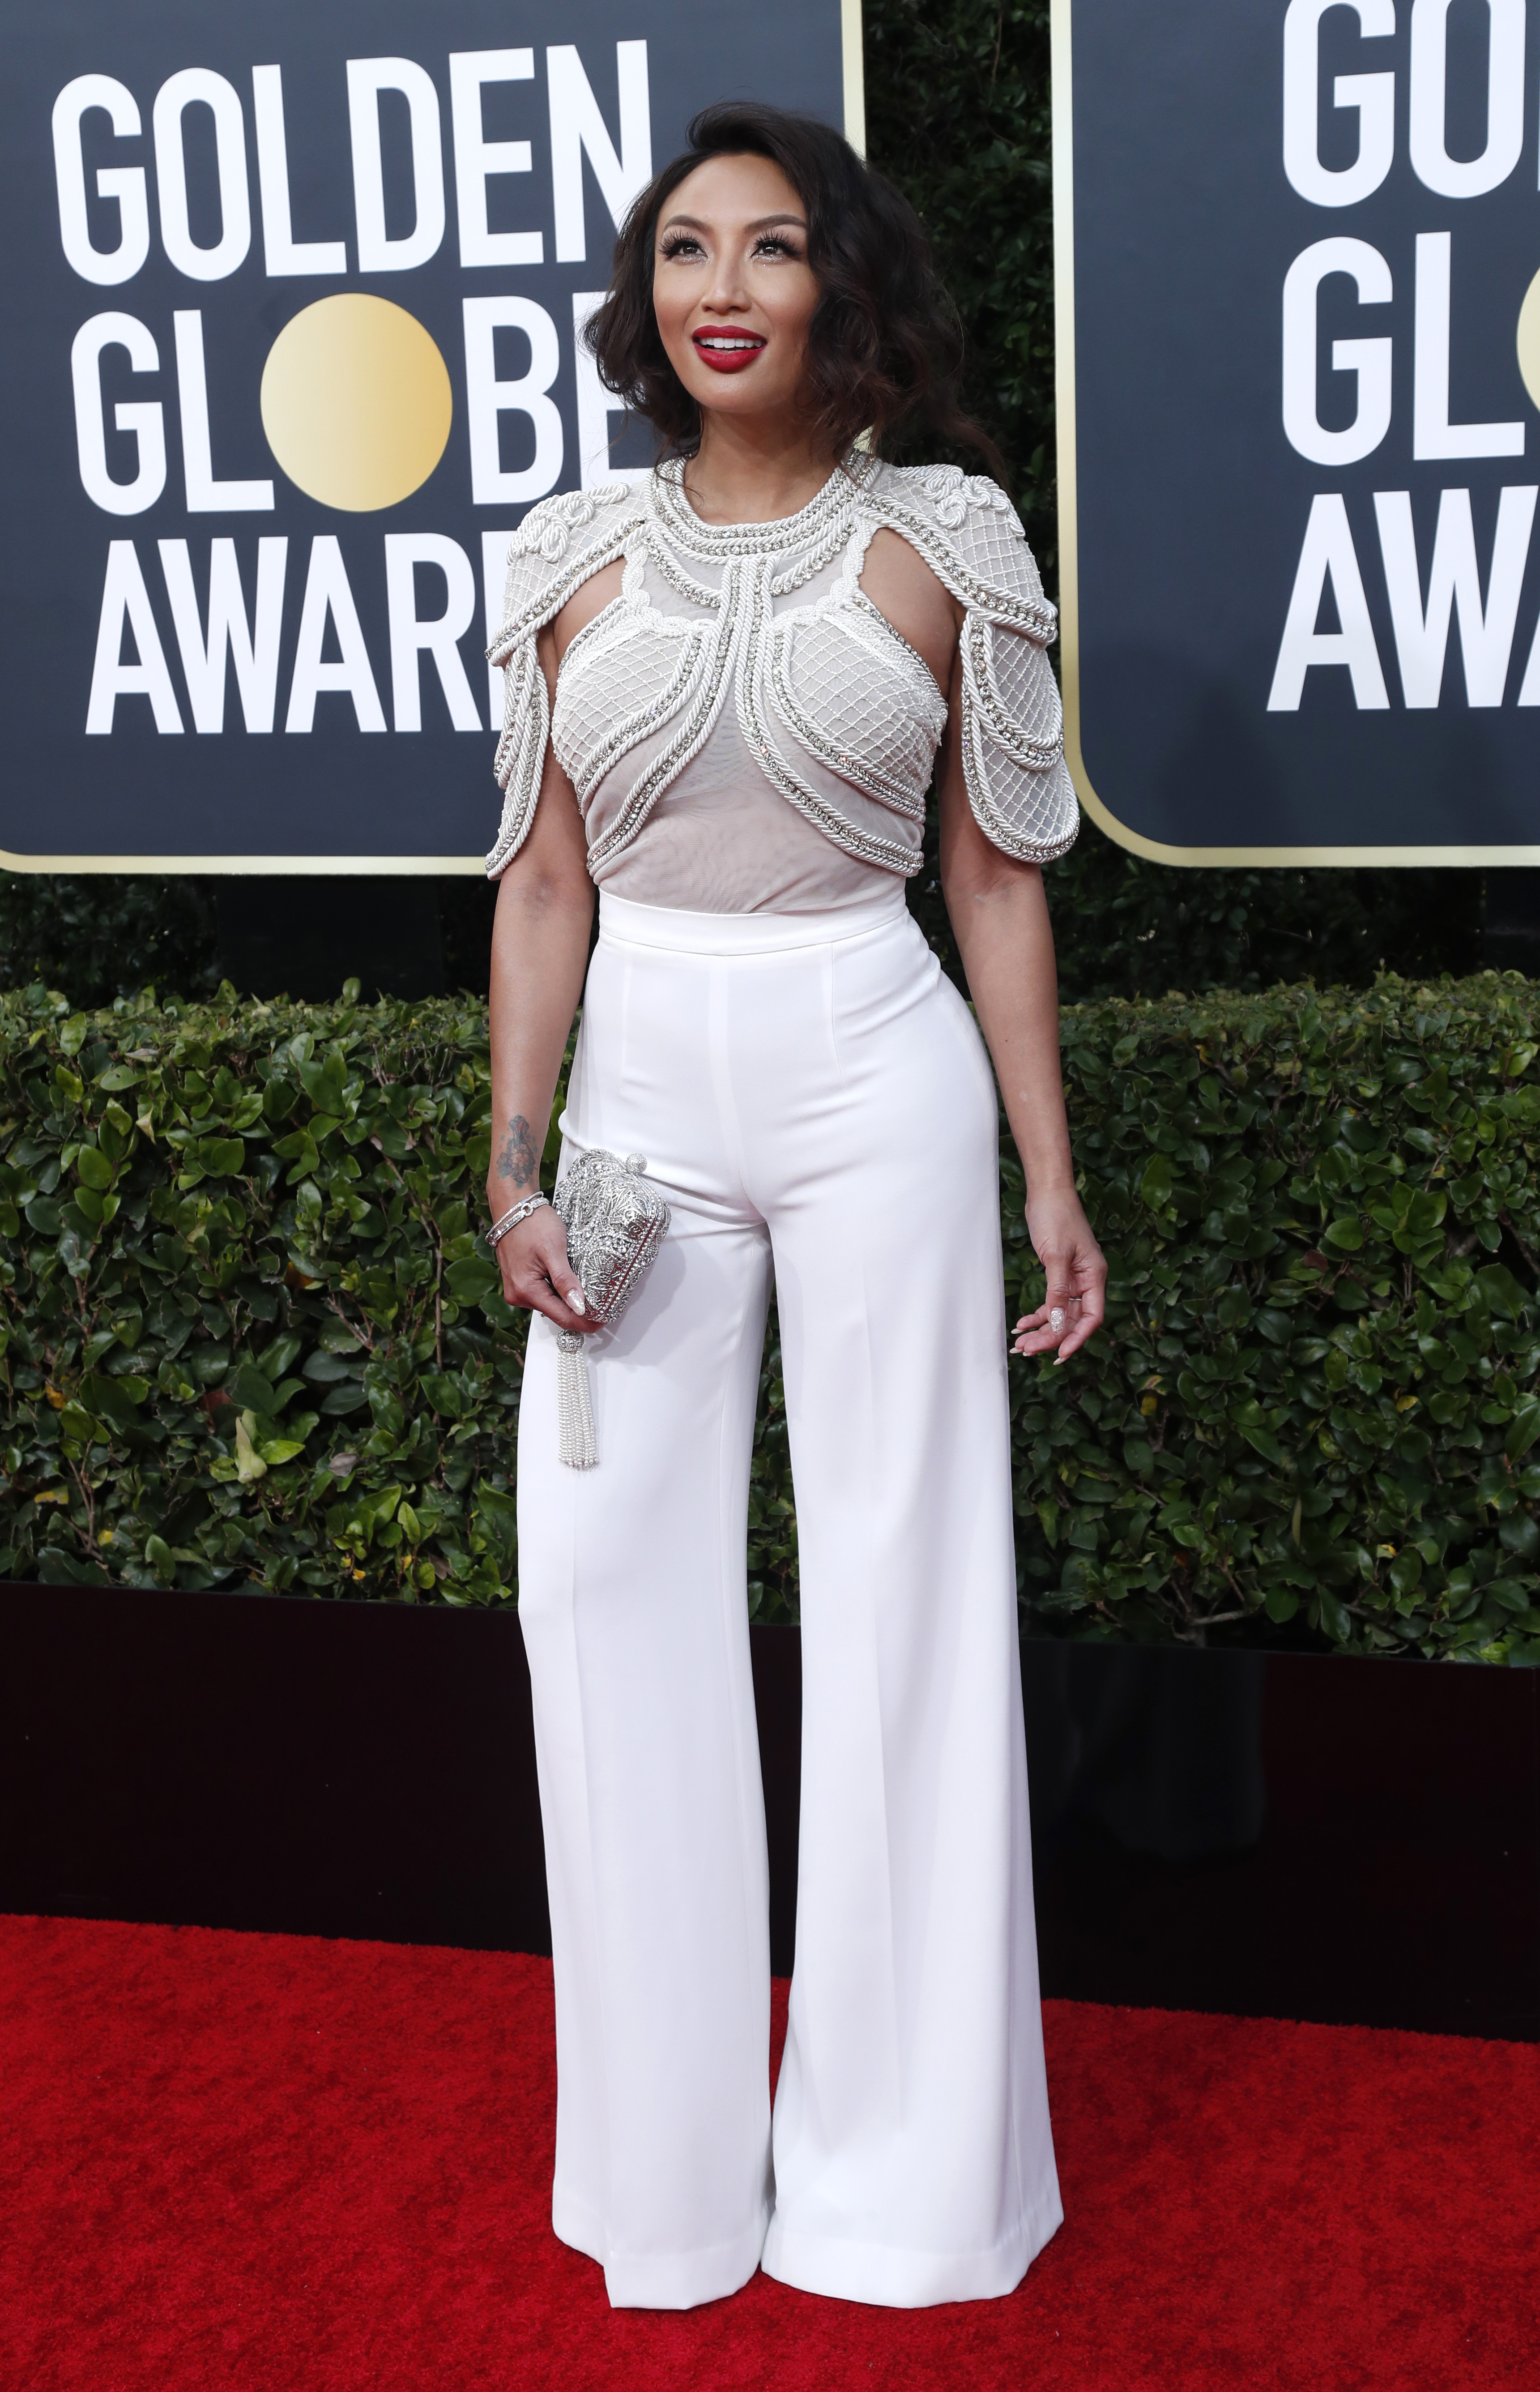 77th Golden Globe Awards - Arrivals - Beverly Hills, California, U.S., January 5, 2020 - Jeannie Mai. REUTERS/Mario Anzuoni